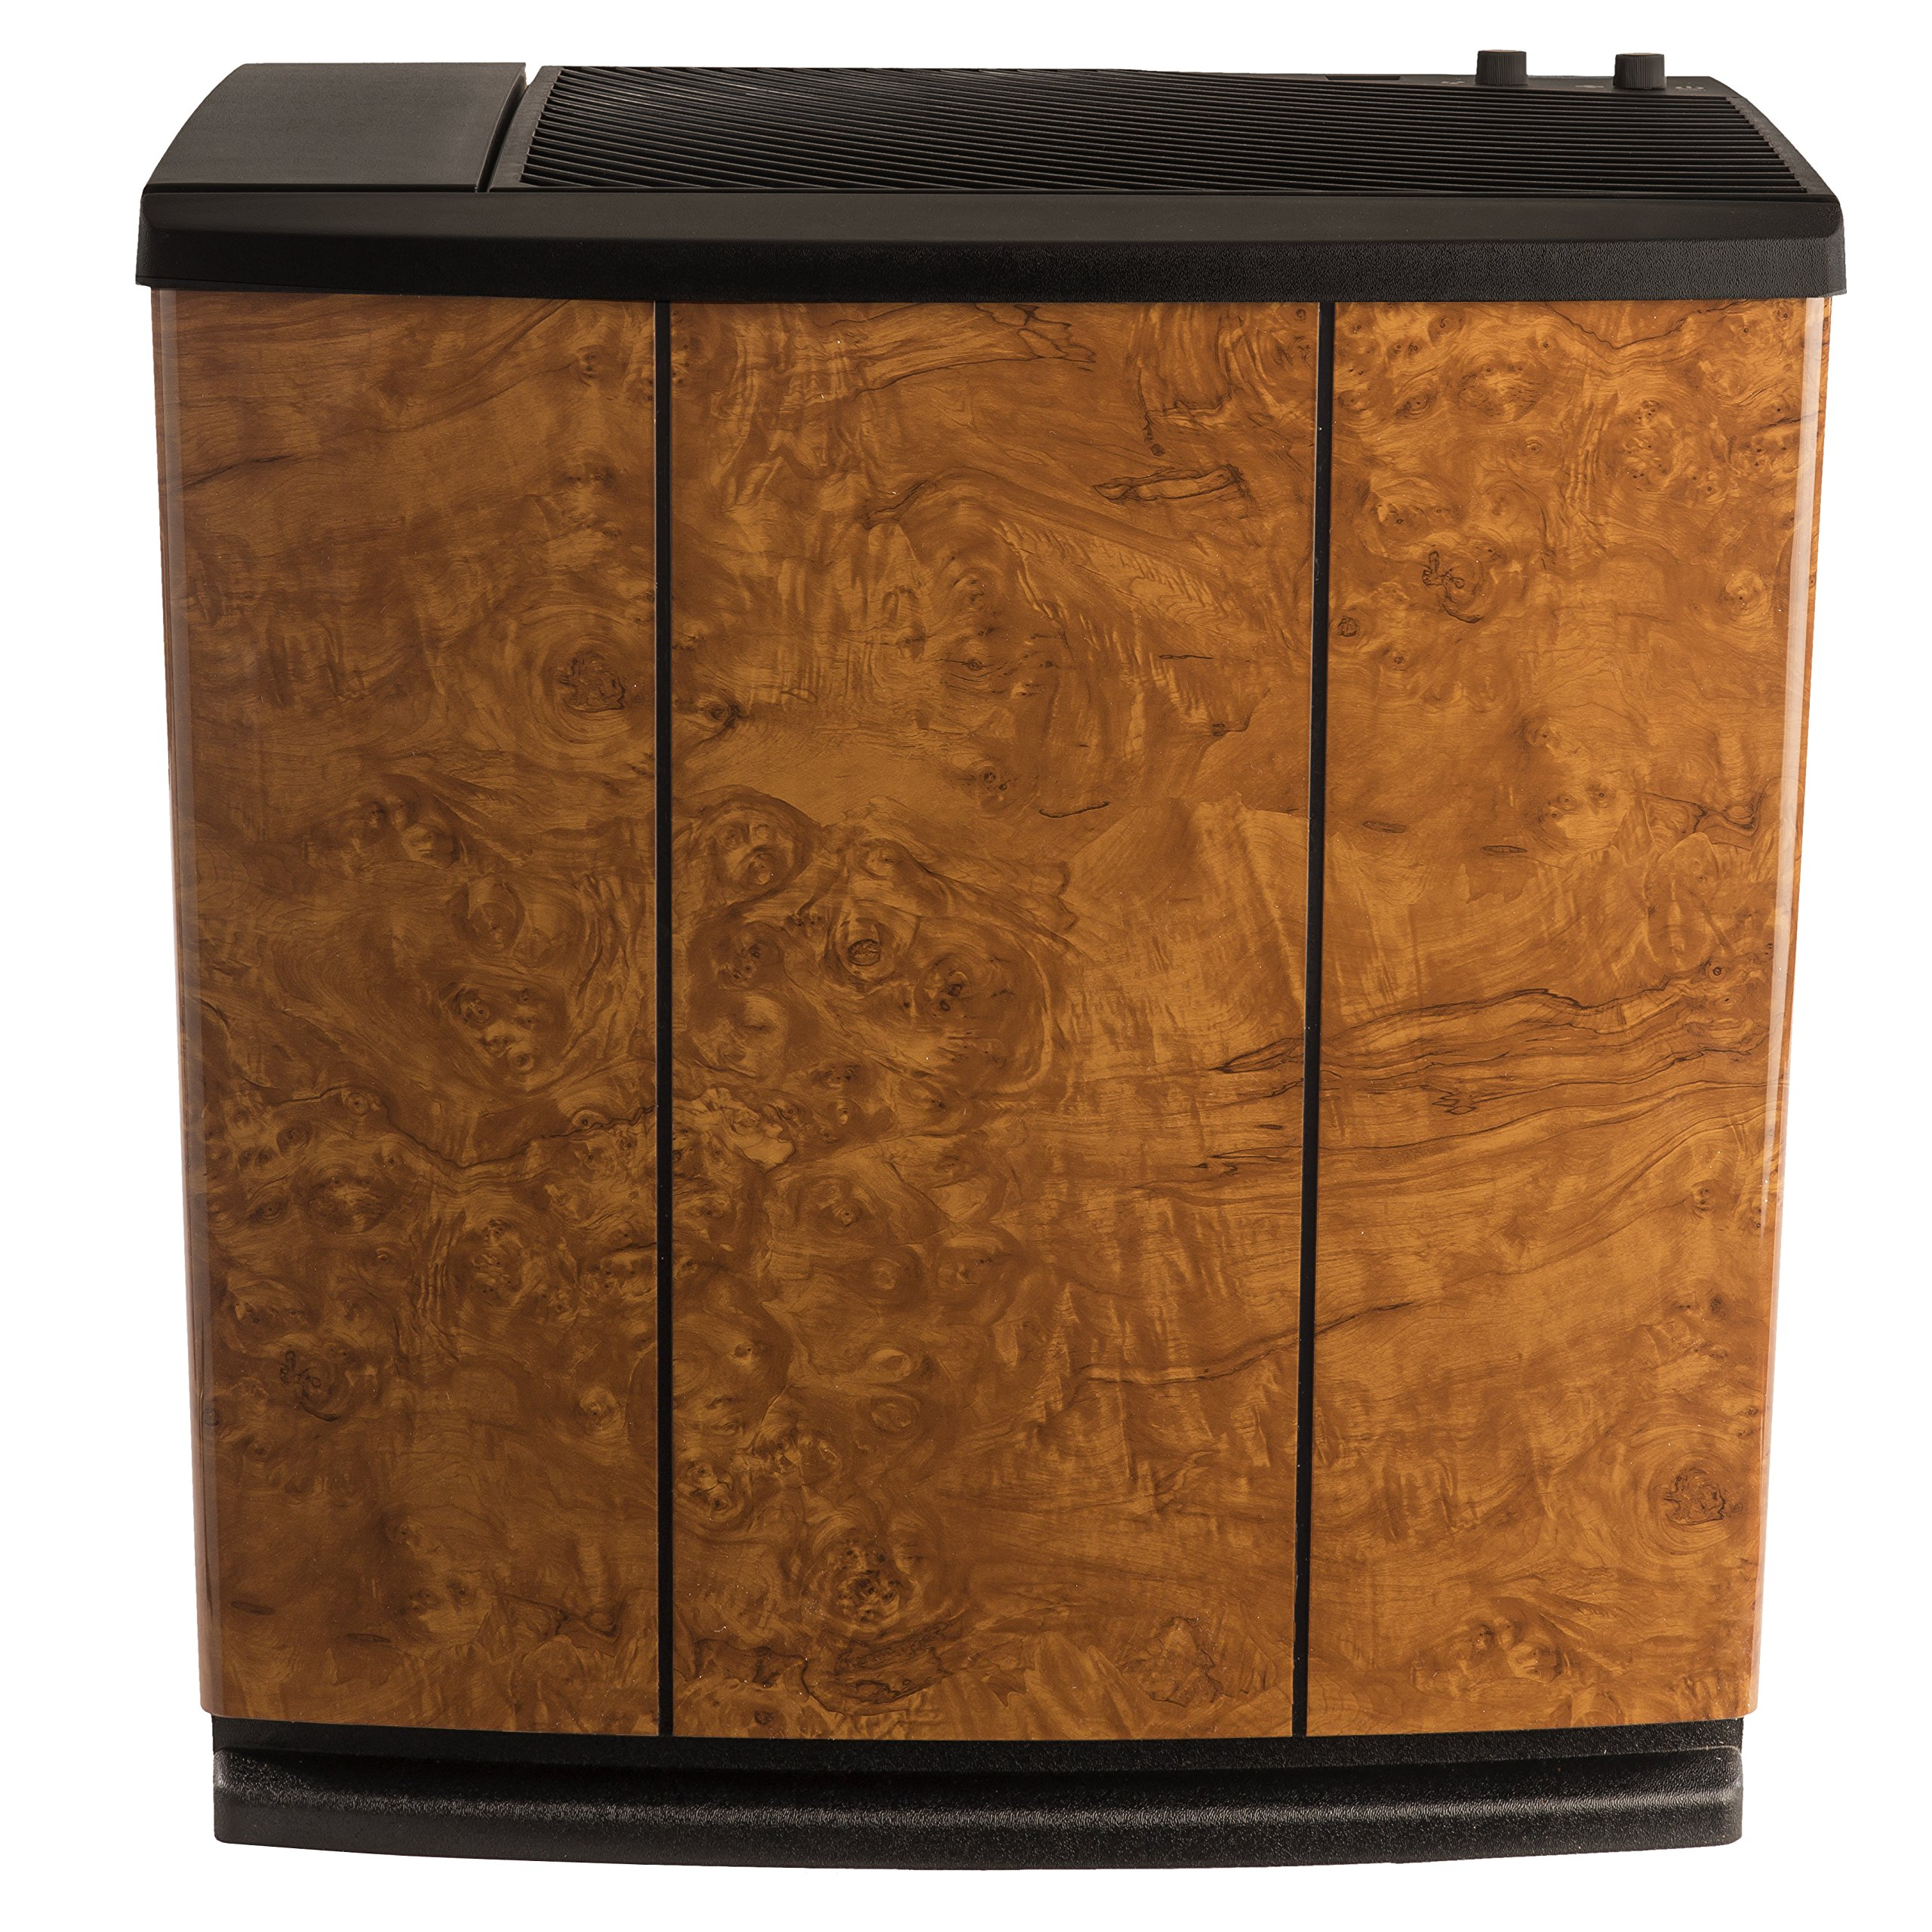 AIRCARE H12-400HB 3-Speed Whole-House Console-Style Evaporative Humidifier, Oak Burl by Essick Air